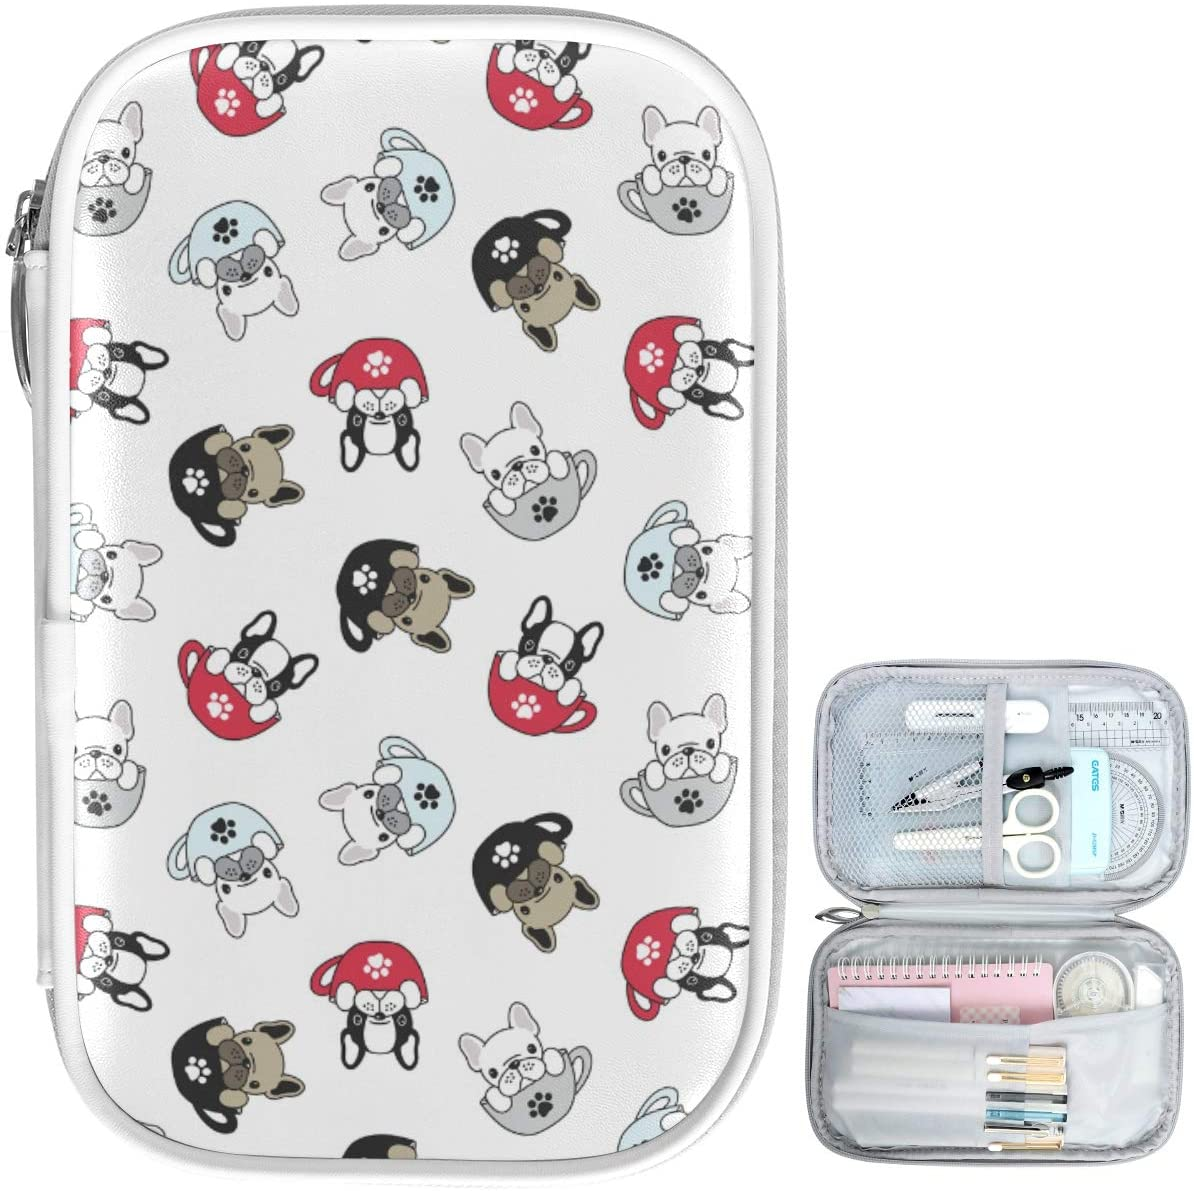 Oarencol French Bulldog Pug Cup Paw Pencil Case Cute Dog Puppy Zipper Pen Bag Large Capacity Cosmetic Pouch Stationery Box